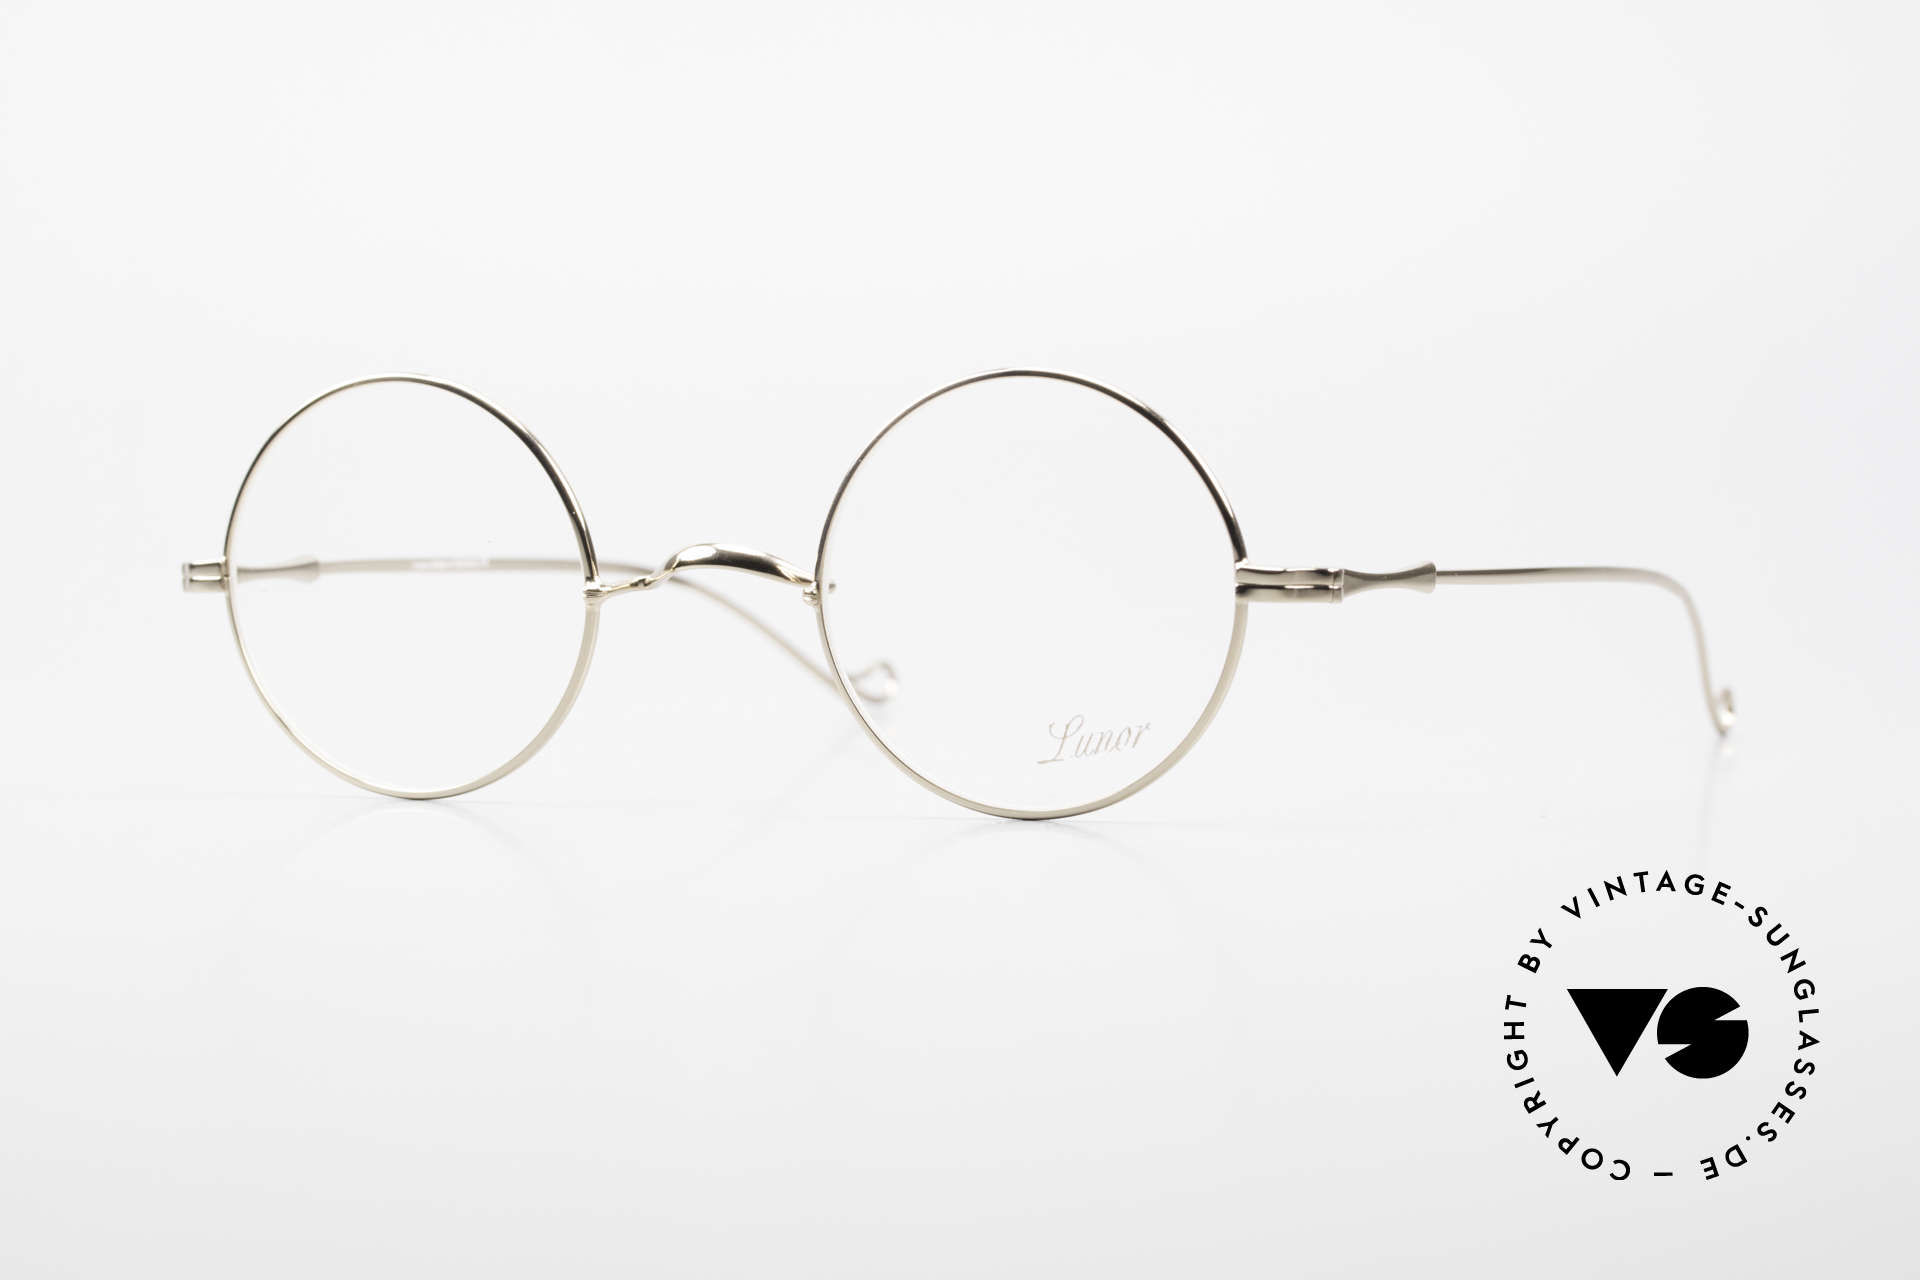 """Lunor II 23 Round Glasses Special Edition, round Lunor eyeglasses of the old """"LUNOR II"""" series, Made for Men and Women"""